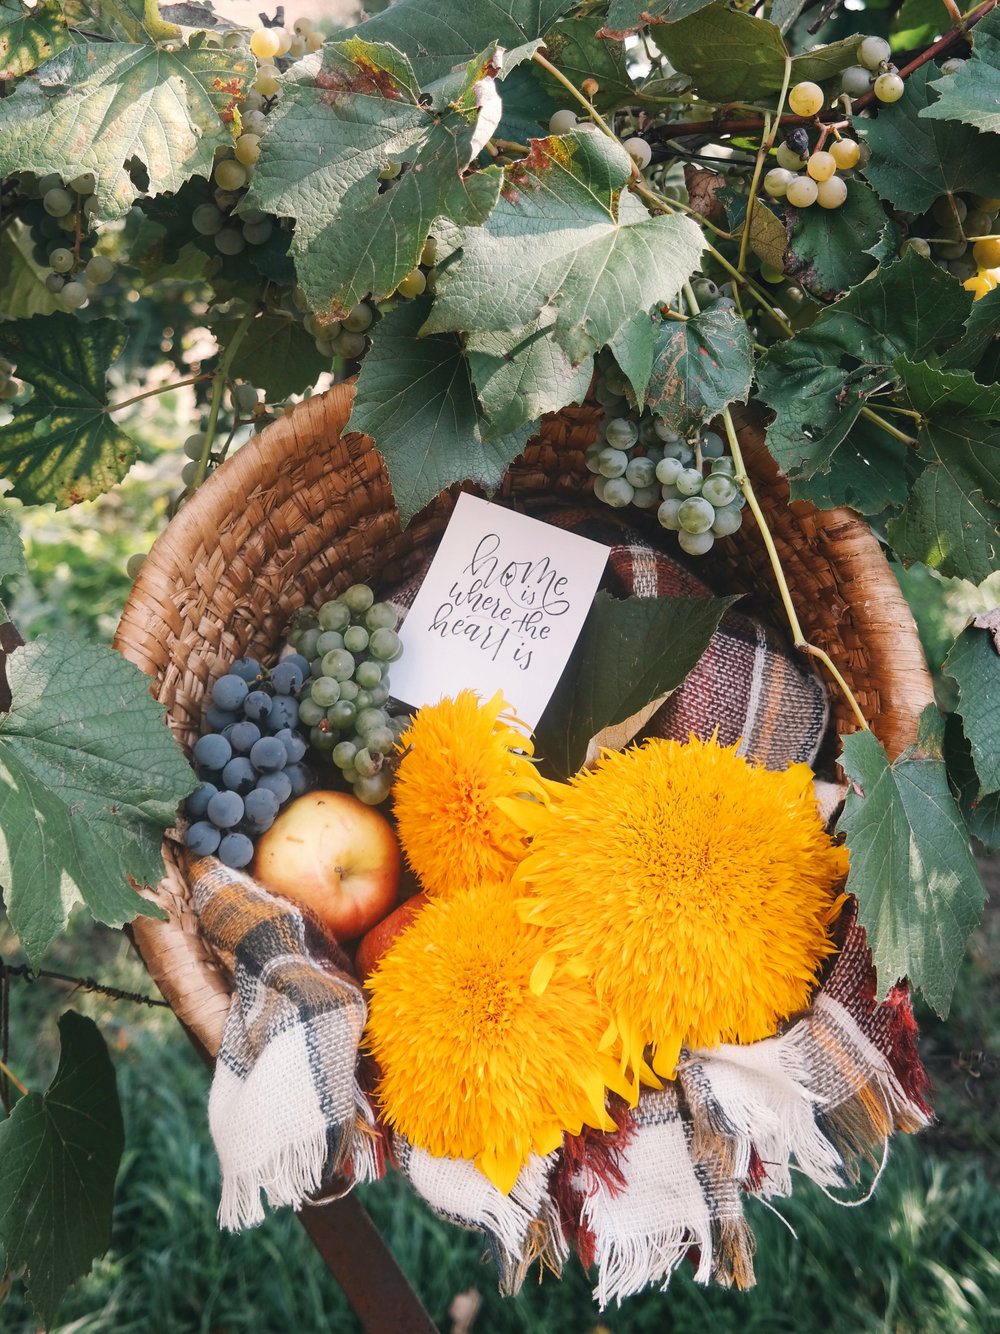 A late Summer harvest of grapes and sunflowers in a basket